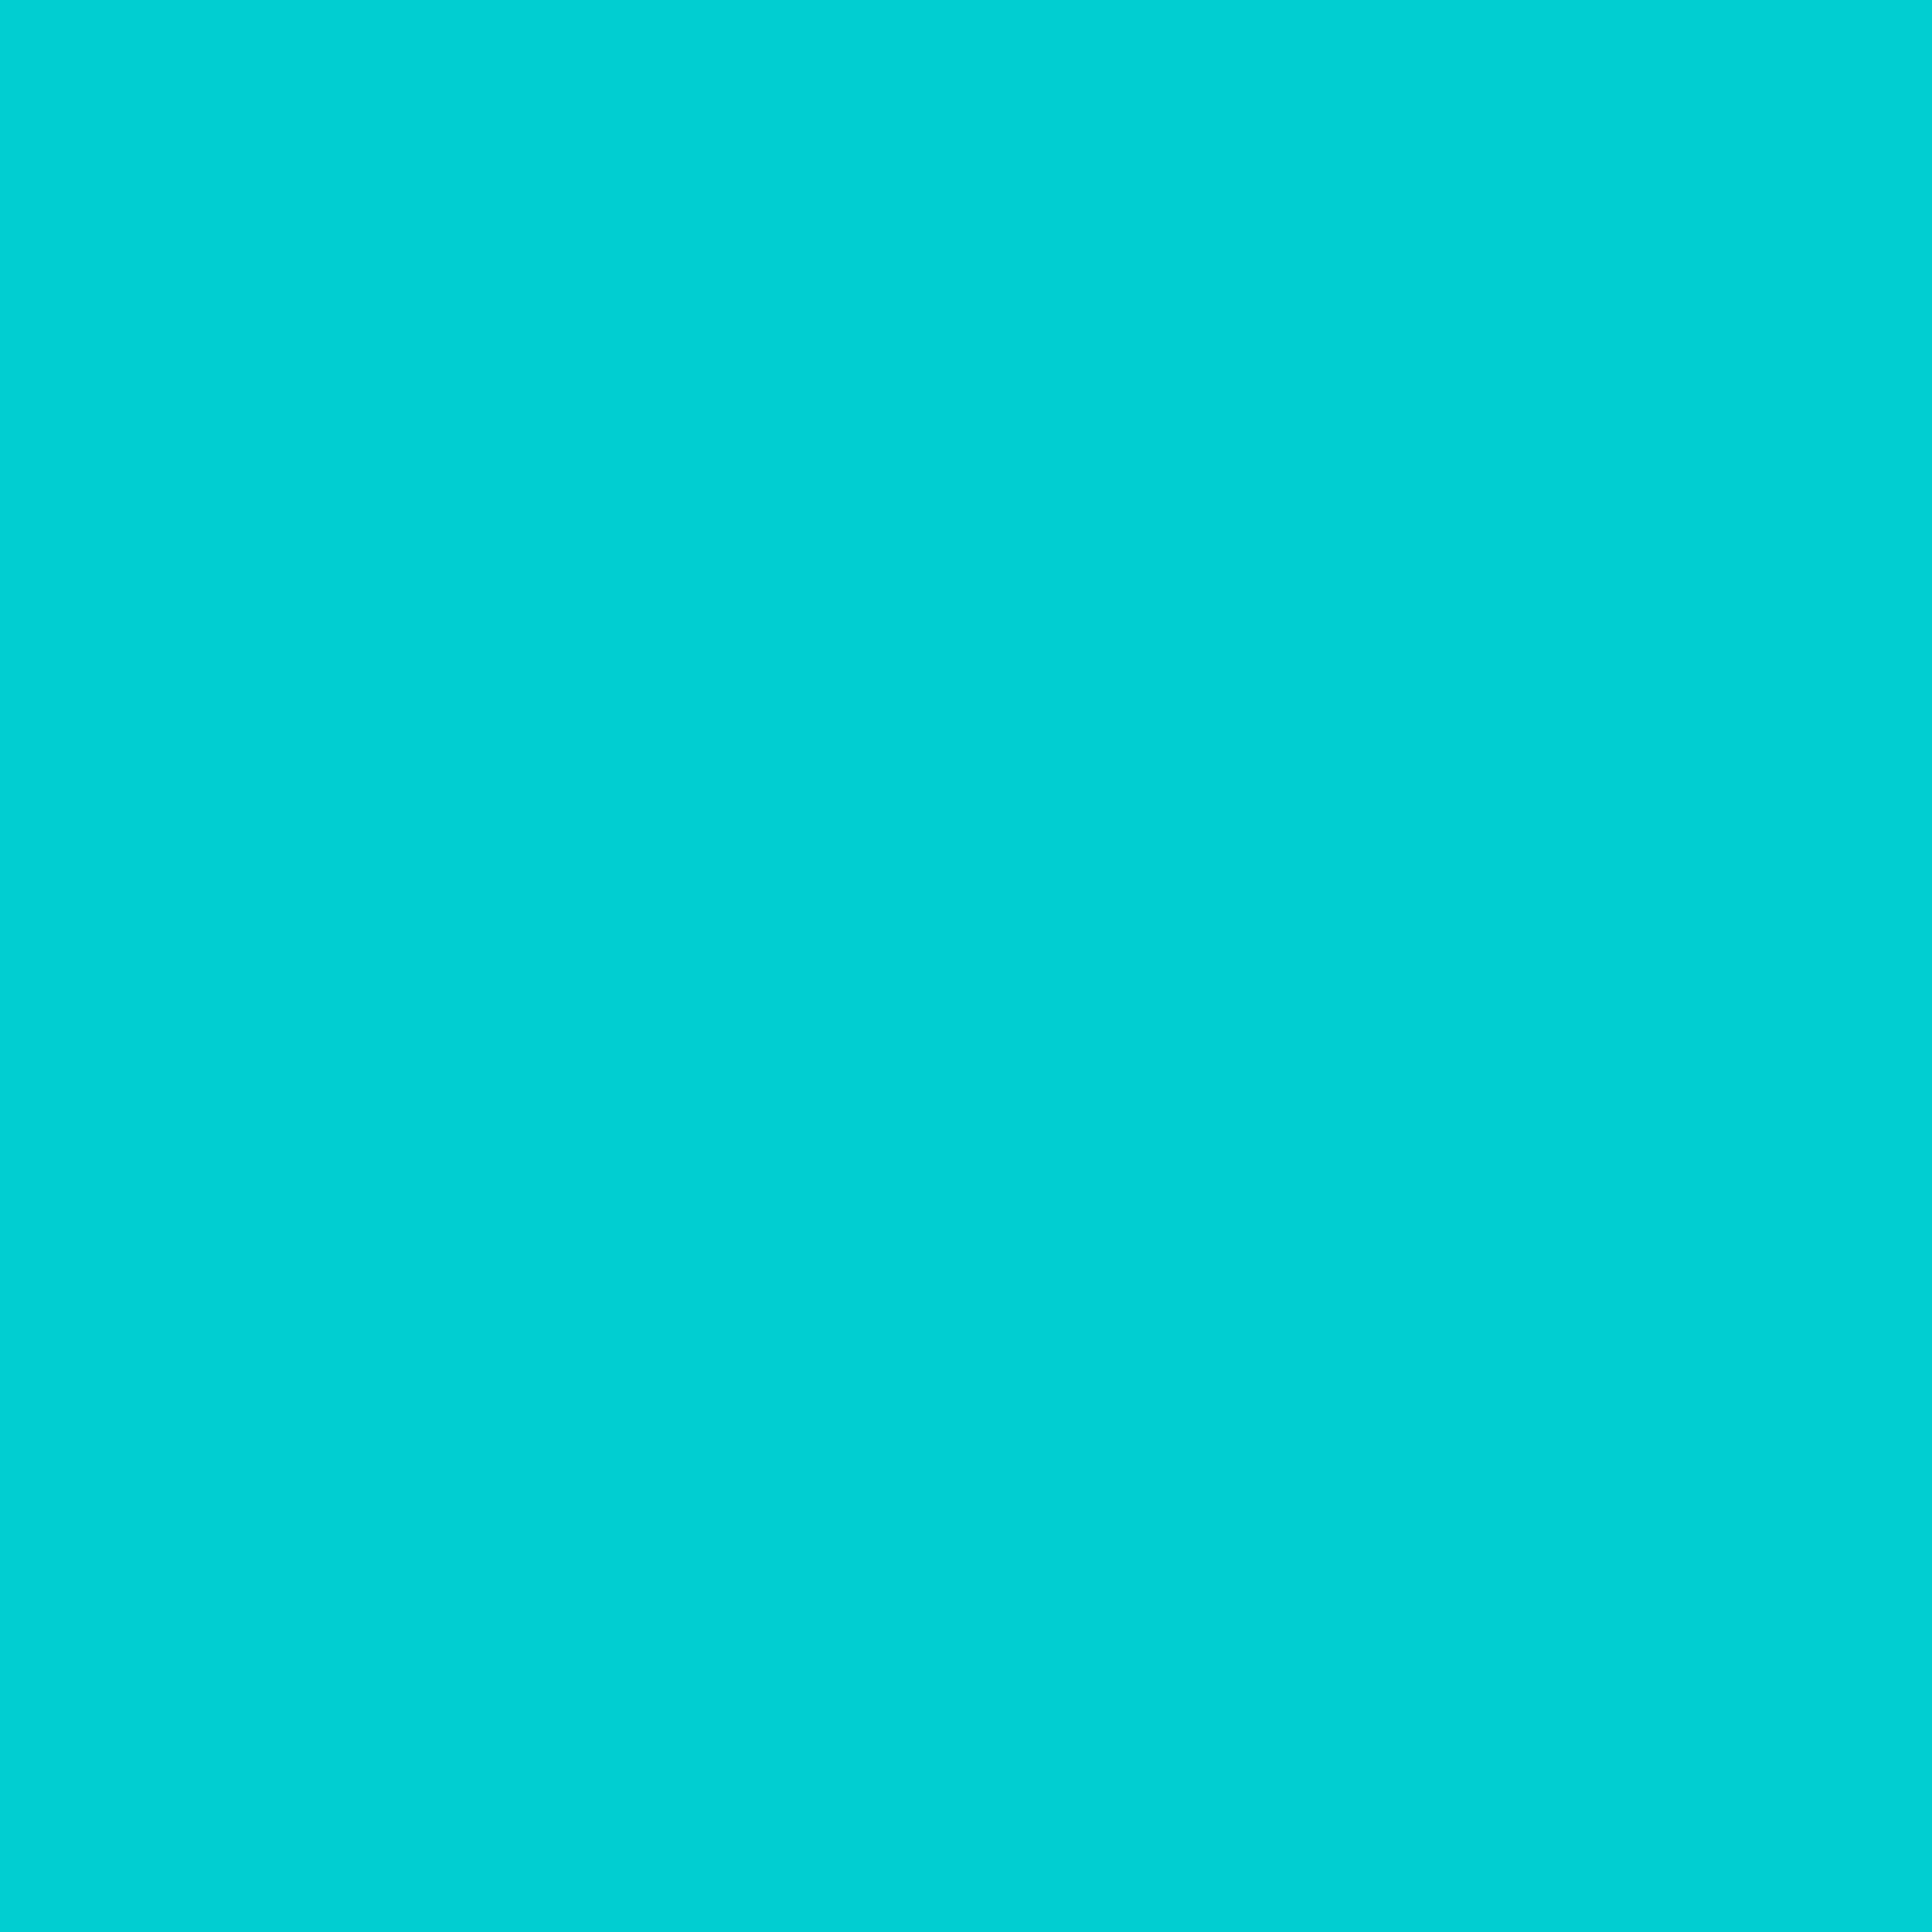 3600x3600 Dark Turquoise Solid Color Background